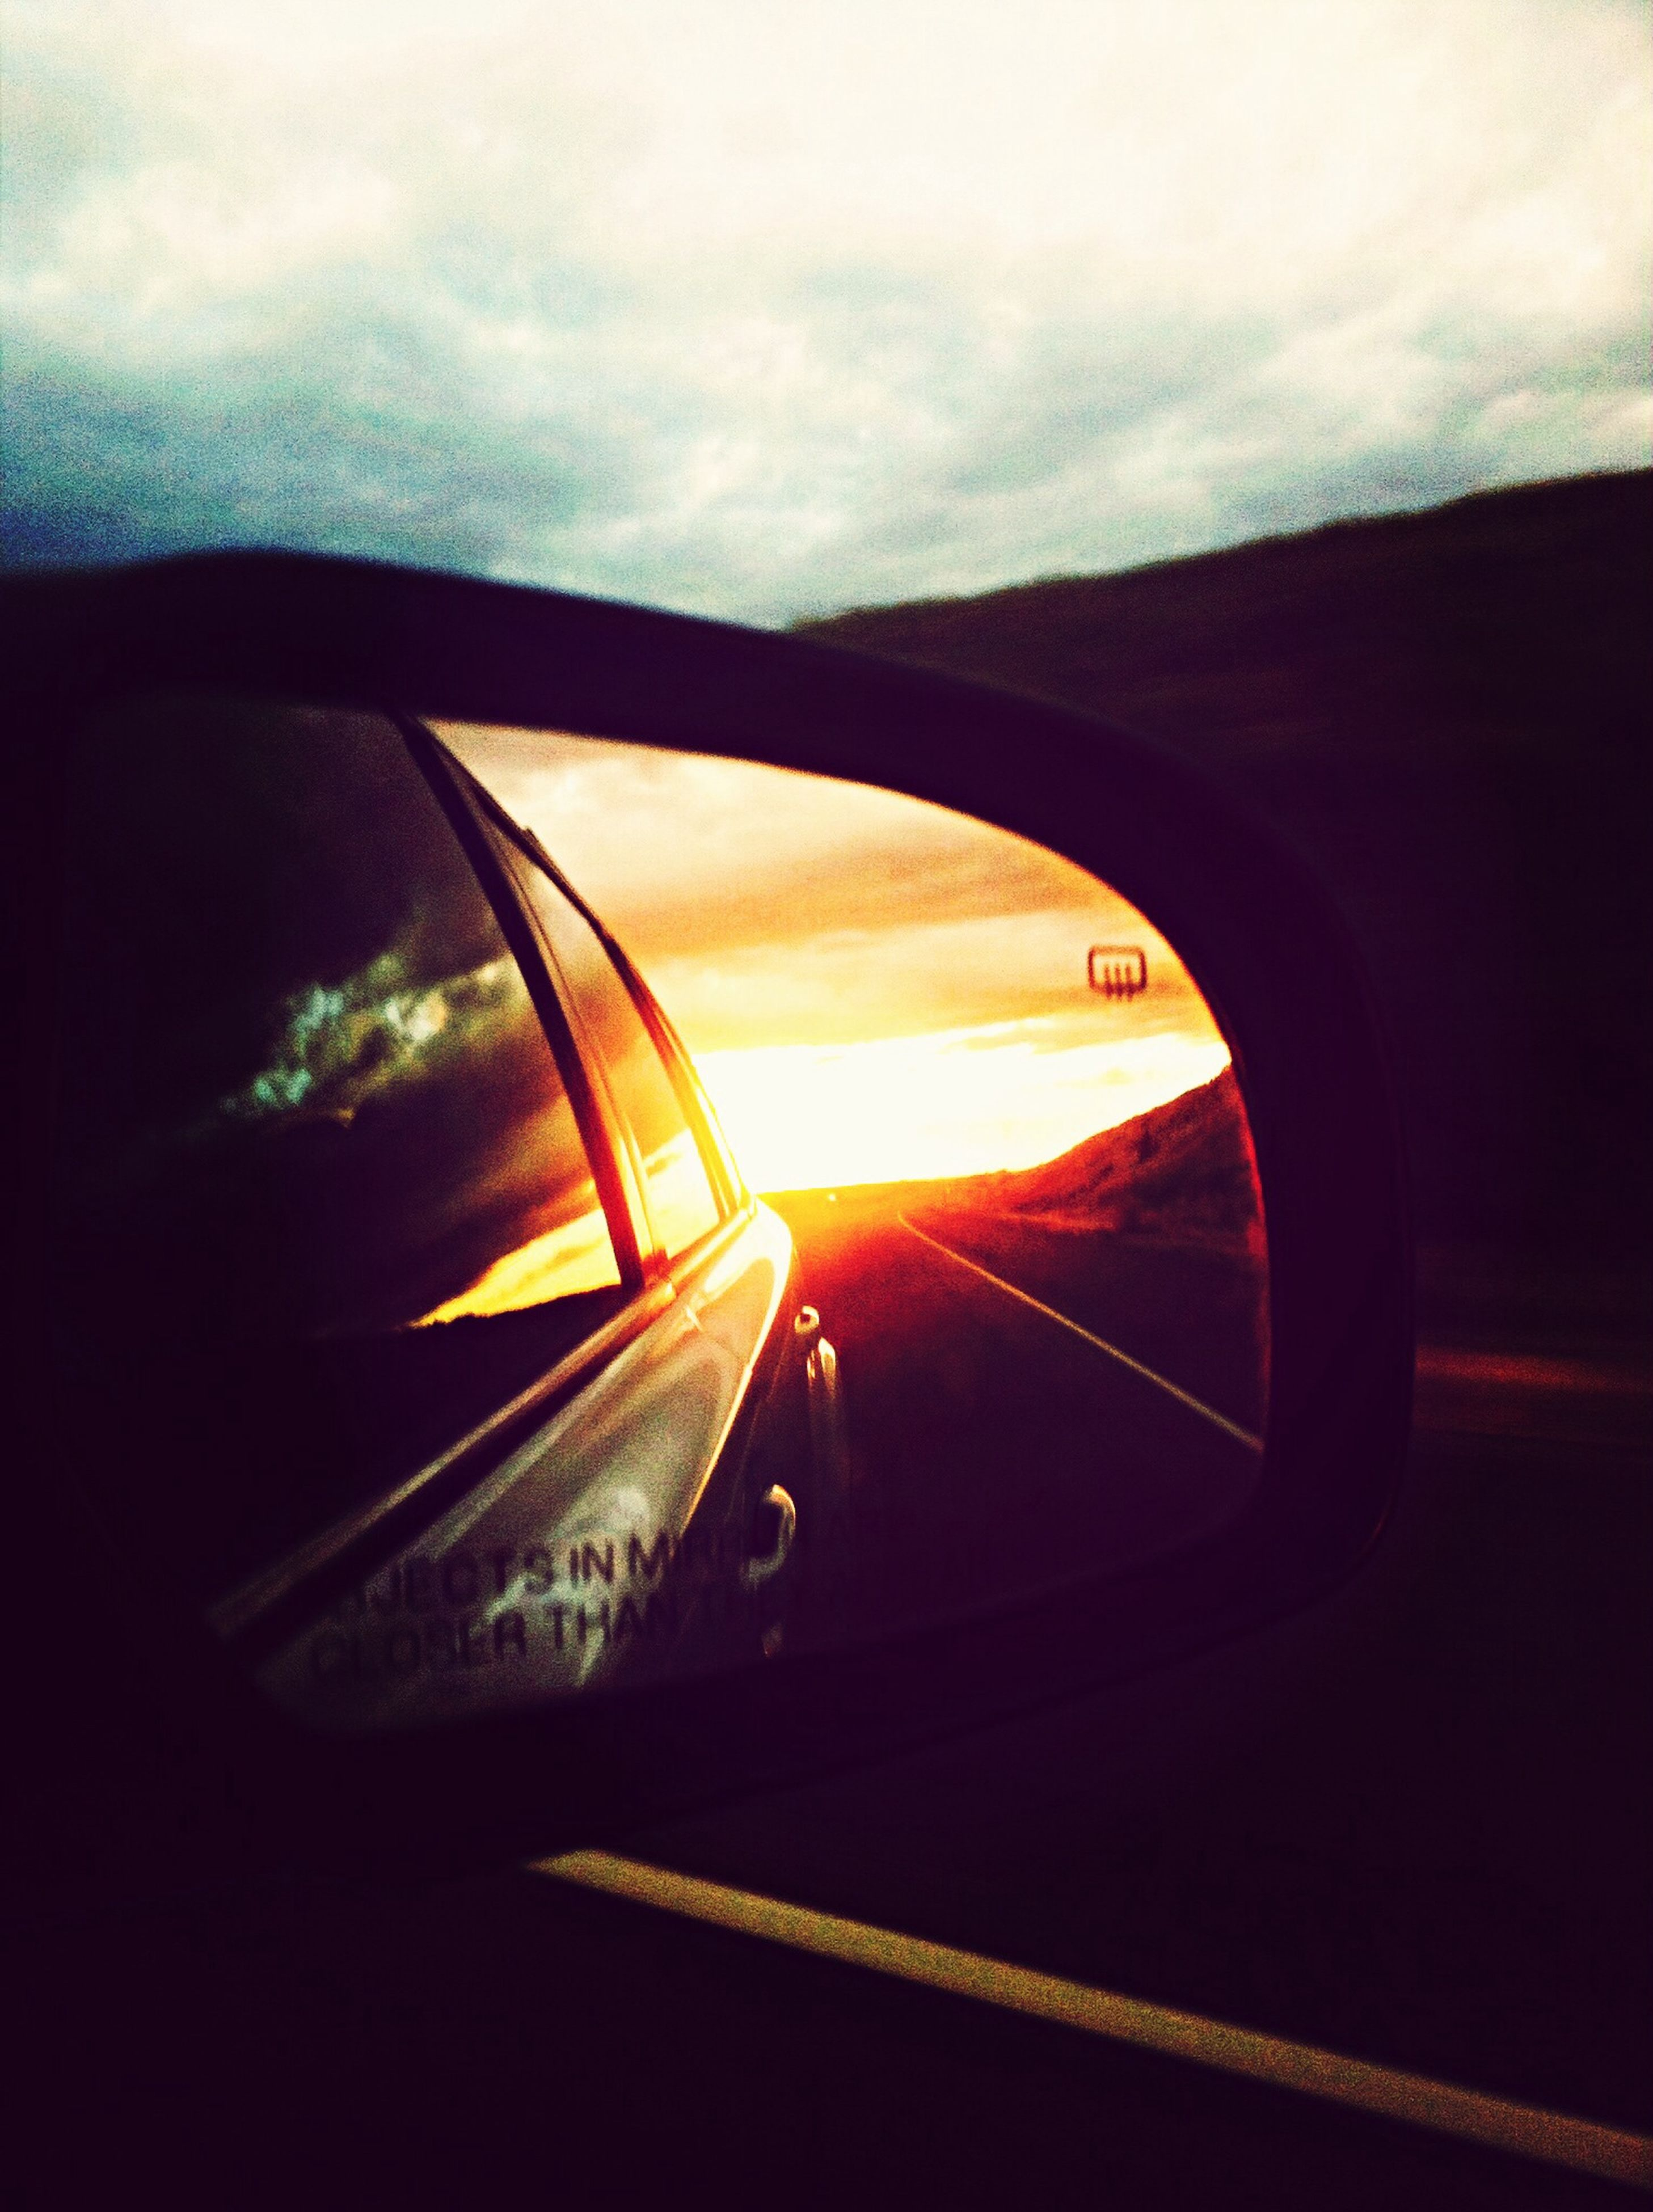 transportation, mode of transport, land vehicle, car, sunset, sky, part of, cropped, cloud - sky, reflection, sun, travel, road, vehicle interior, side-view mirror, sunlight, glass - material, car interior, orange color, no people